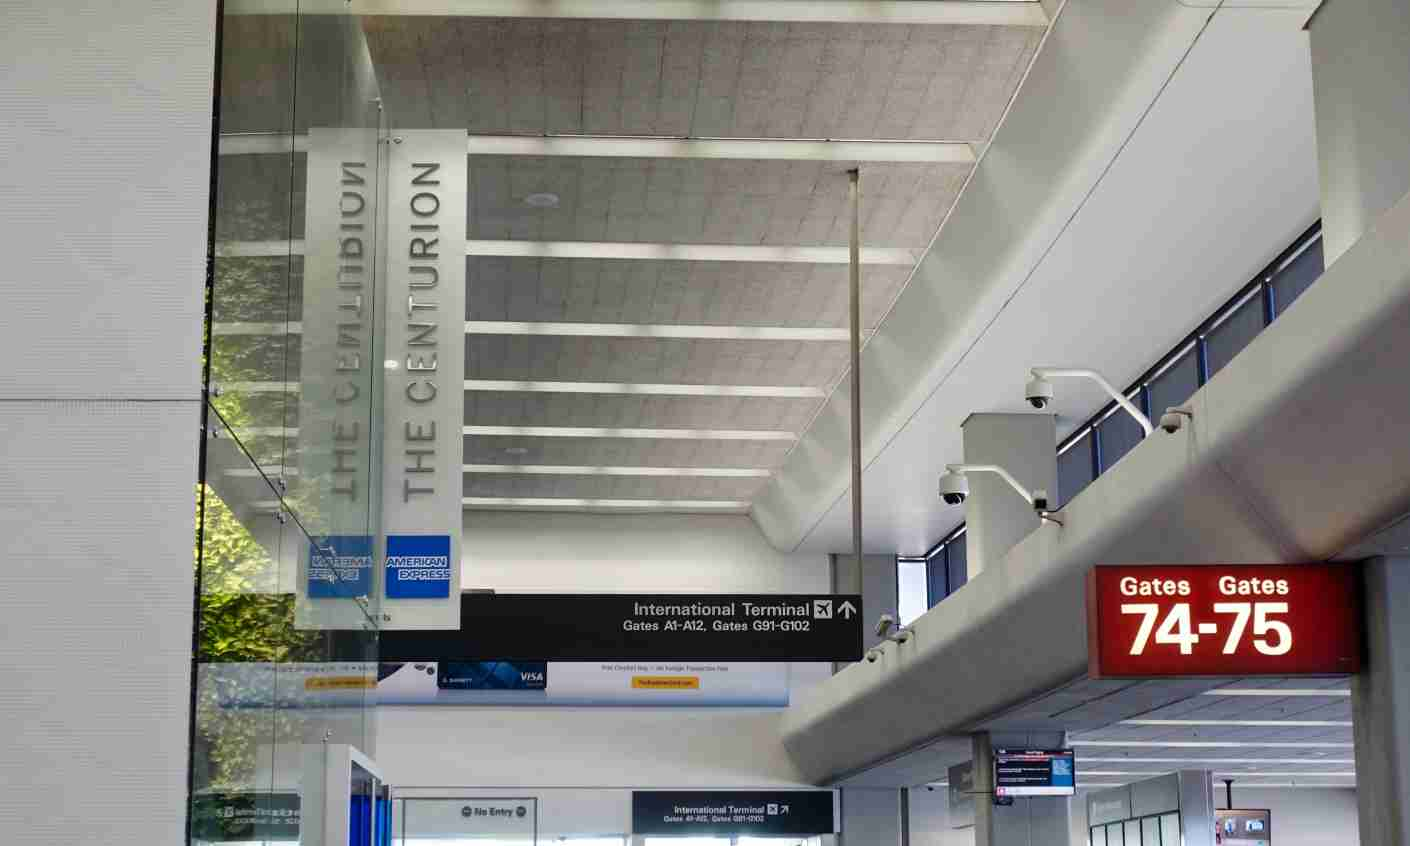 The entrance to the Centurion Lounge in San Francisco (SFO).